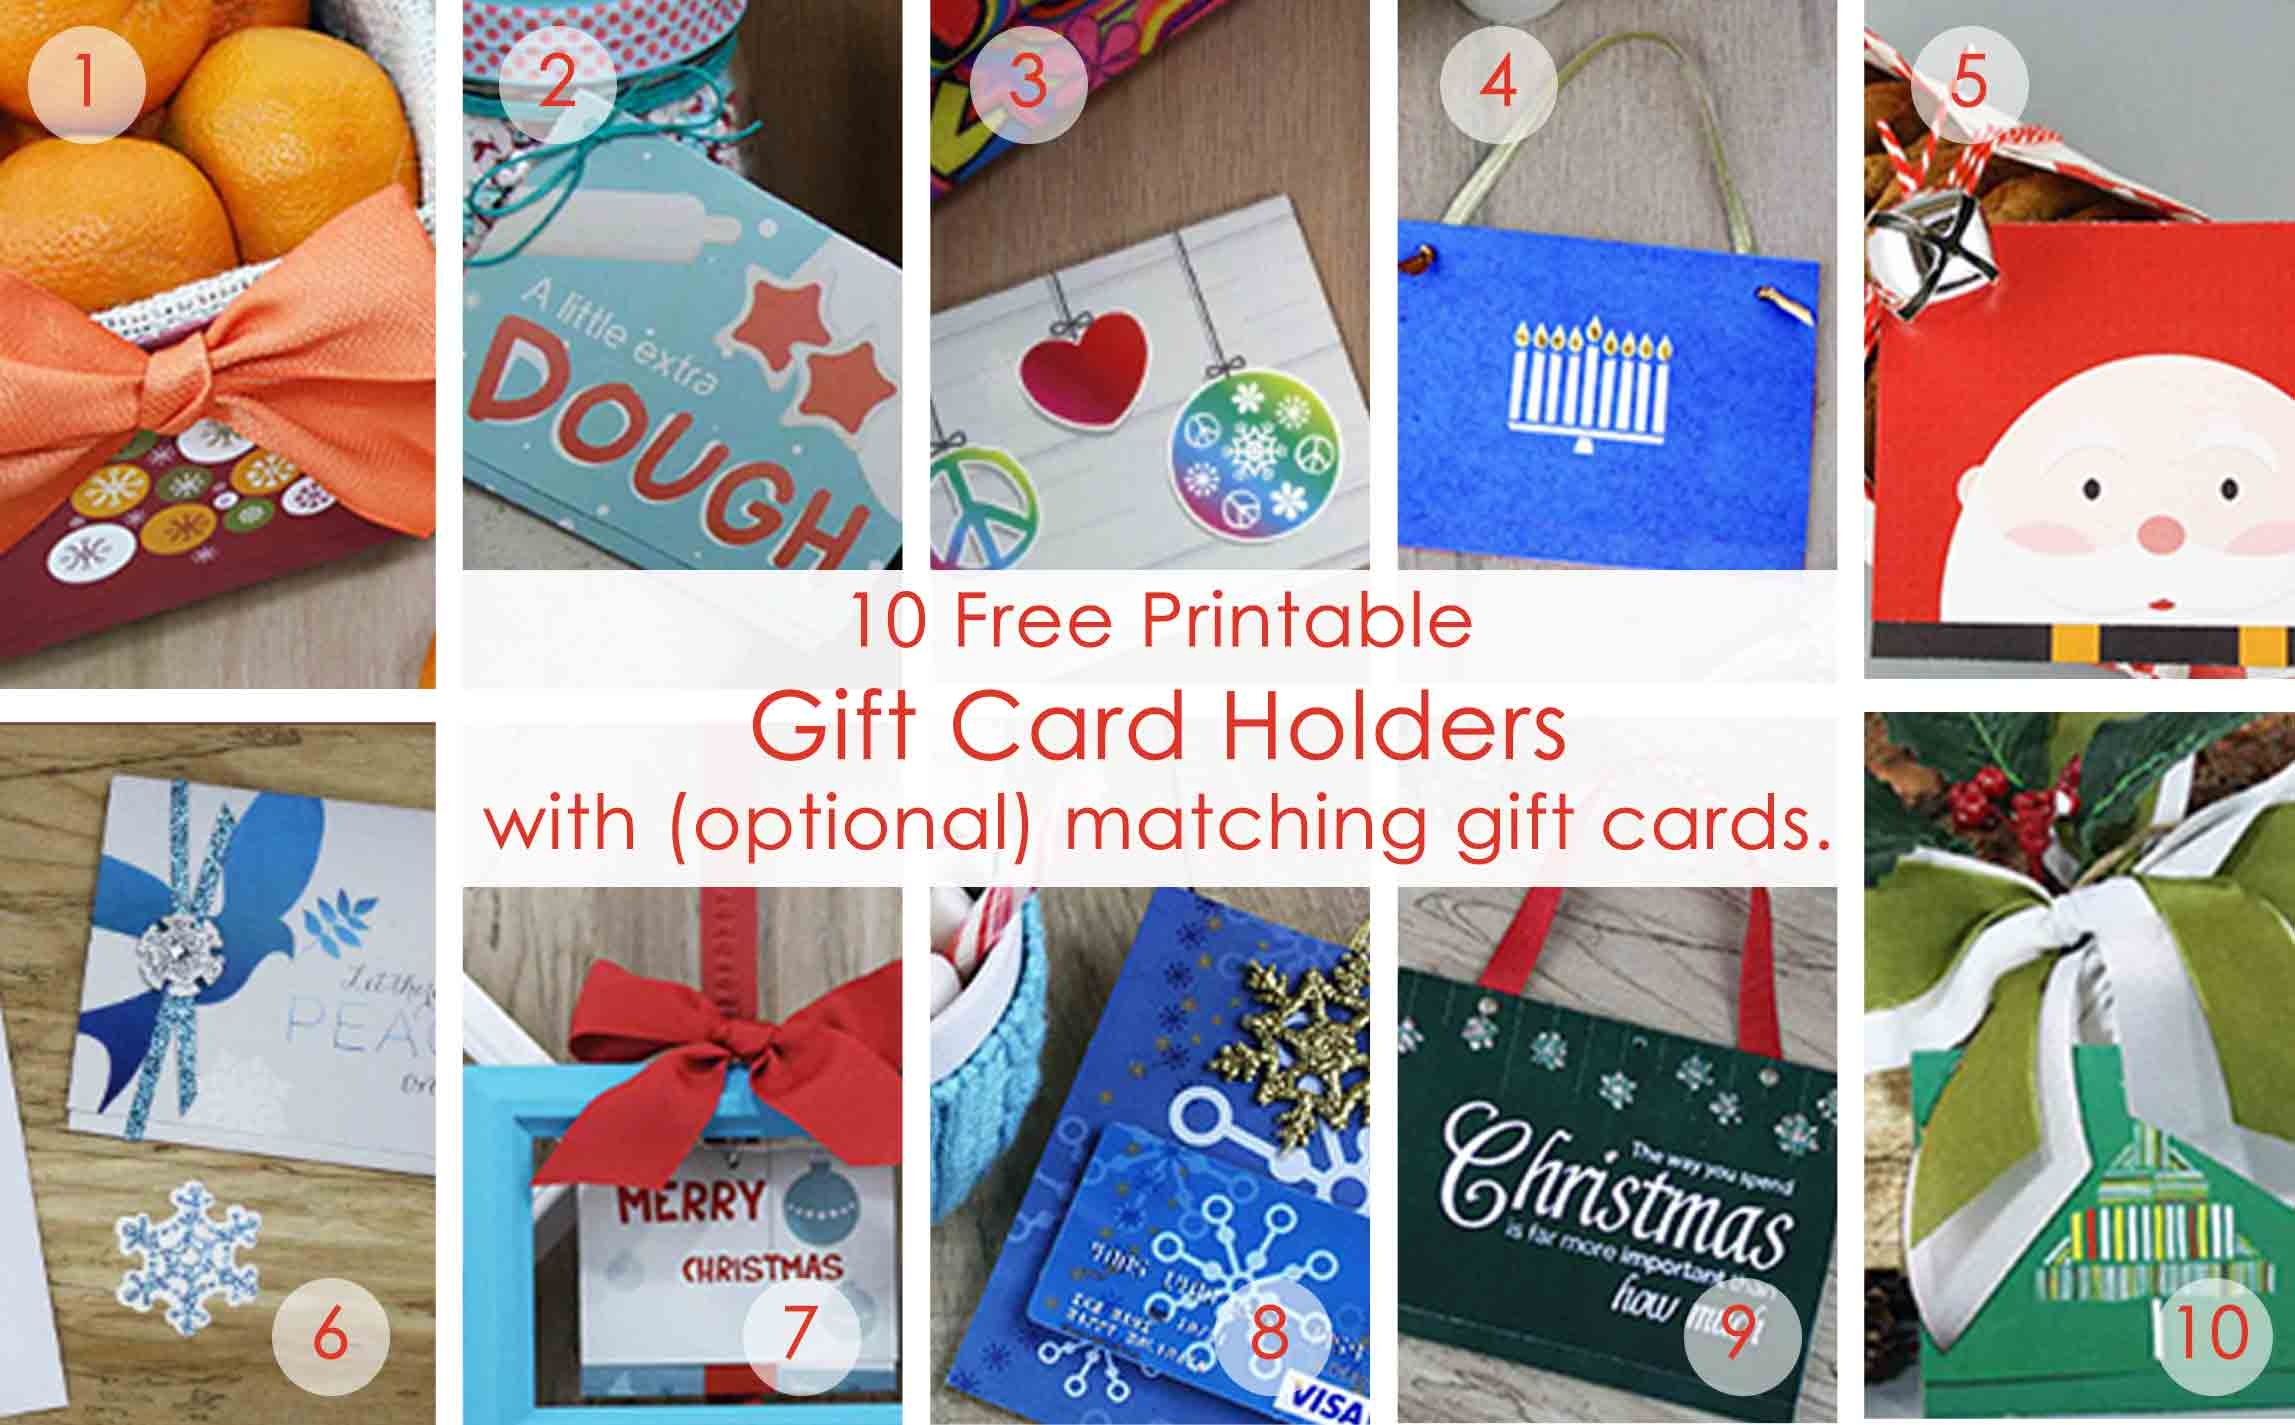 Over 50 Printable Gift Card Holders For The Holidays | Gcg - Free Printable Money Cards For Birthdays